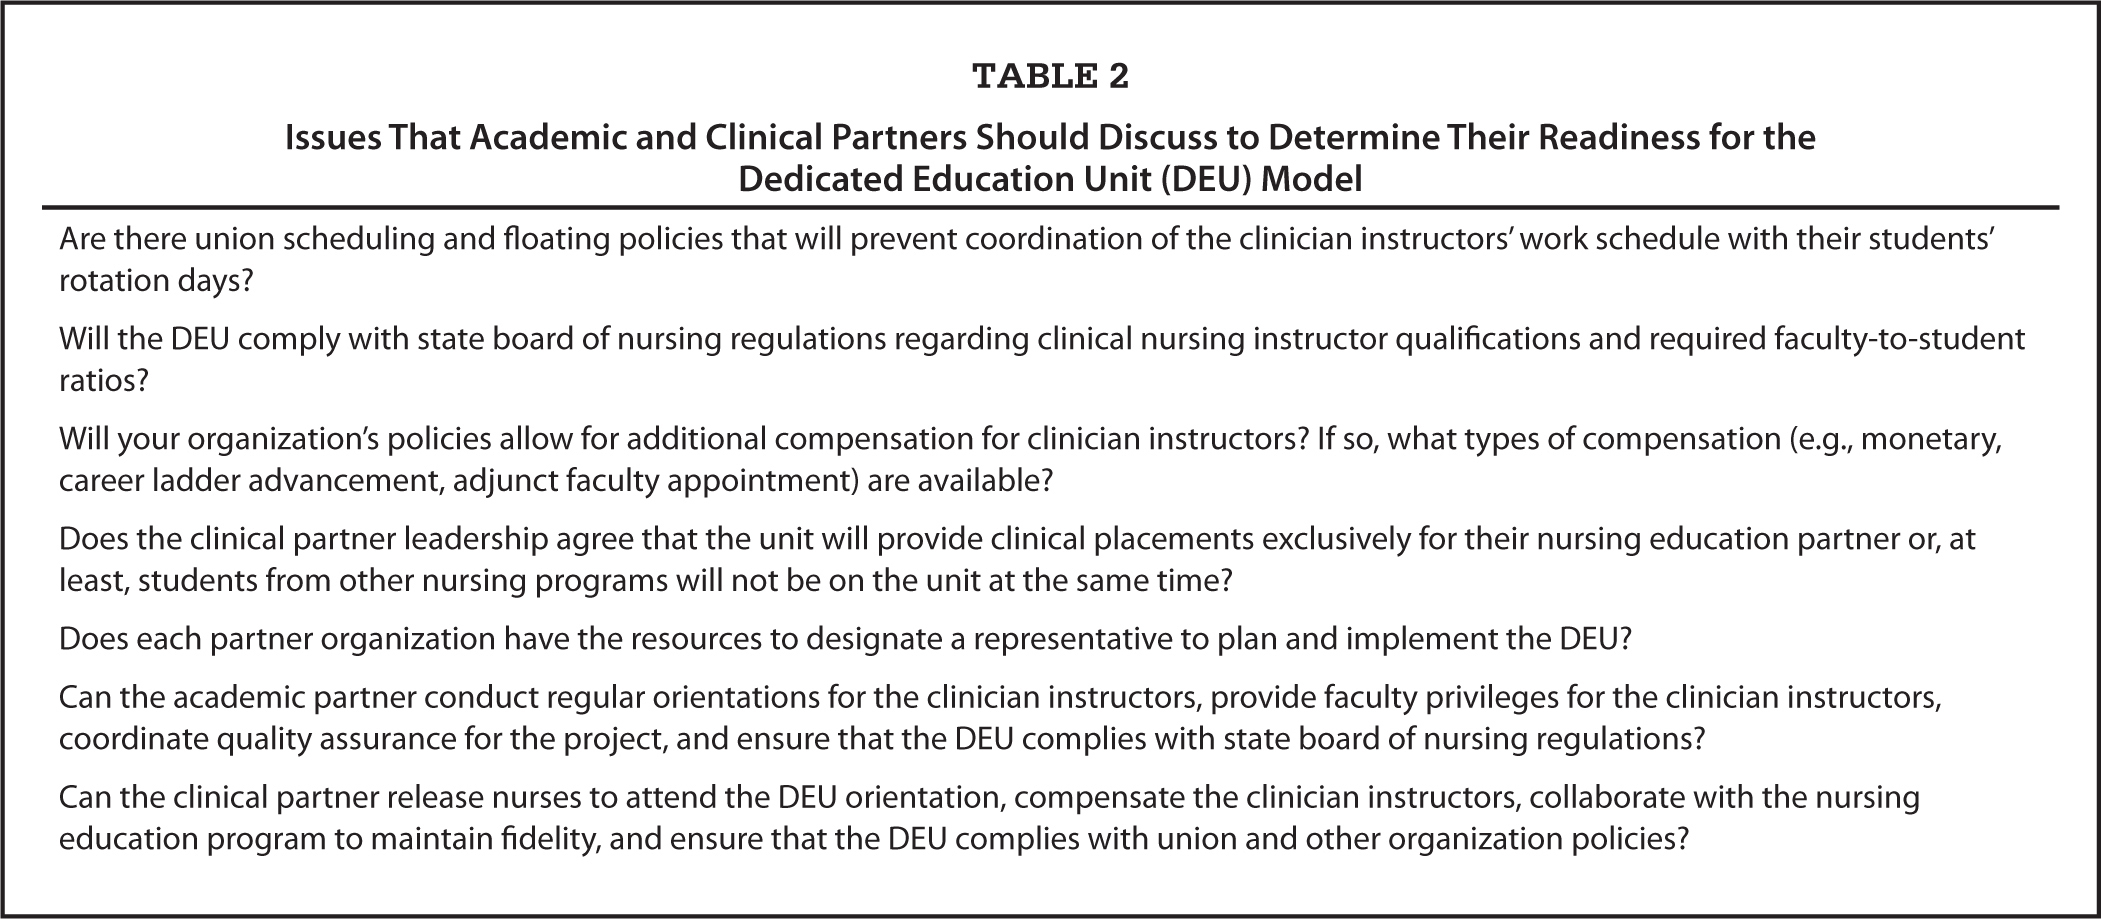 Issues That Academic and Clinical Partners Should Discuss to Determine Their Readiness for the Dedicated Education Unit (DEU) Model